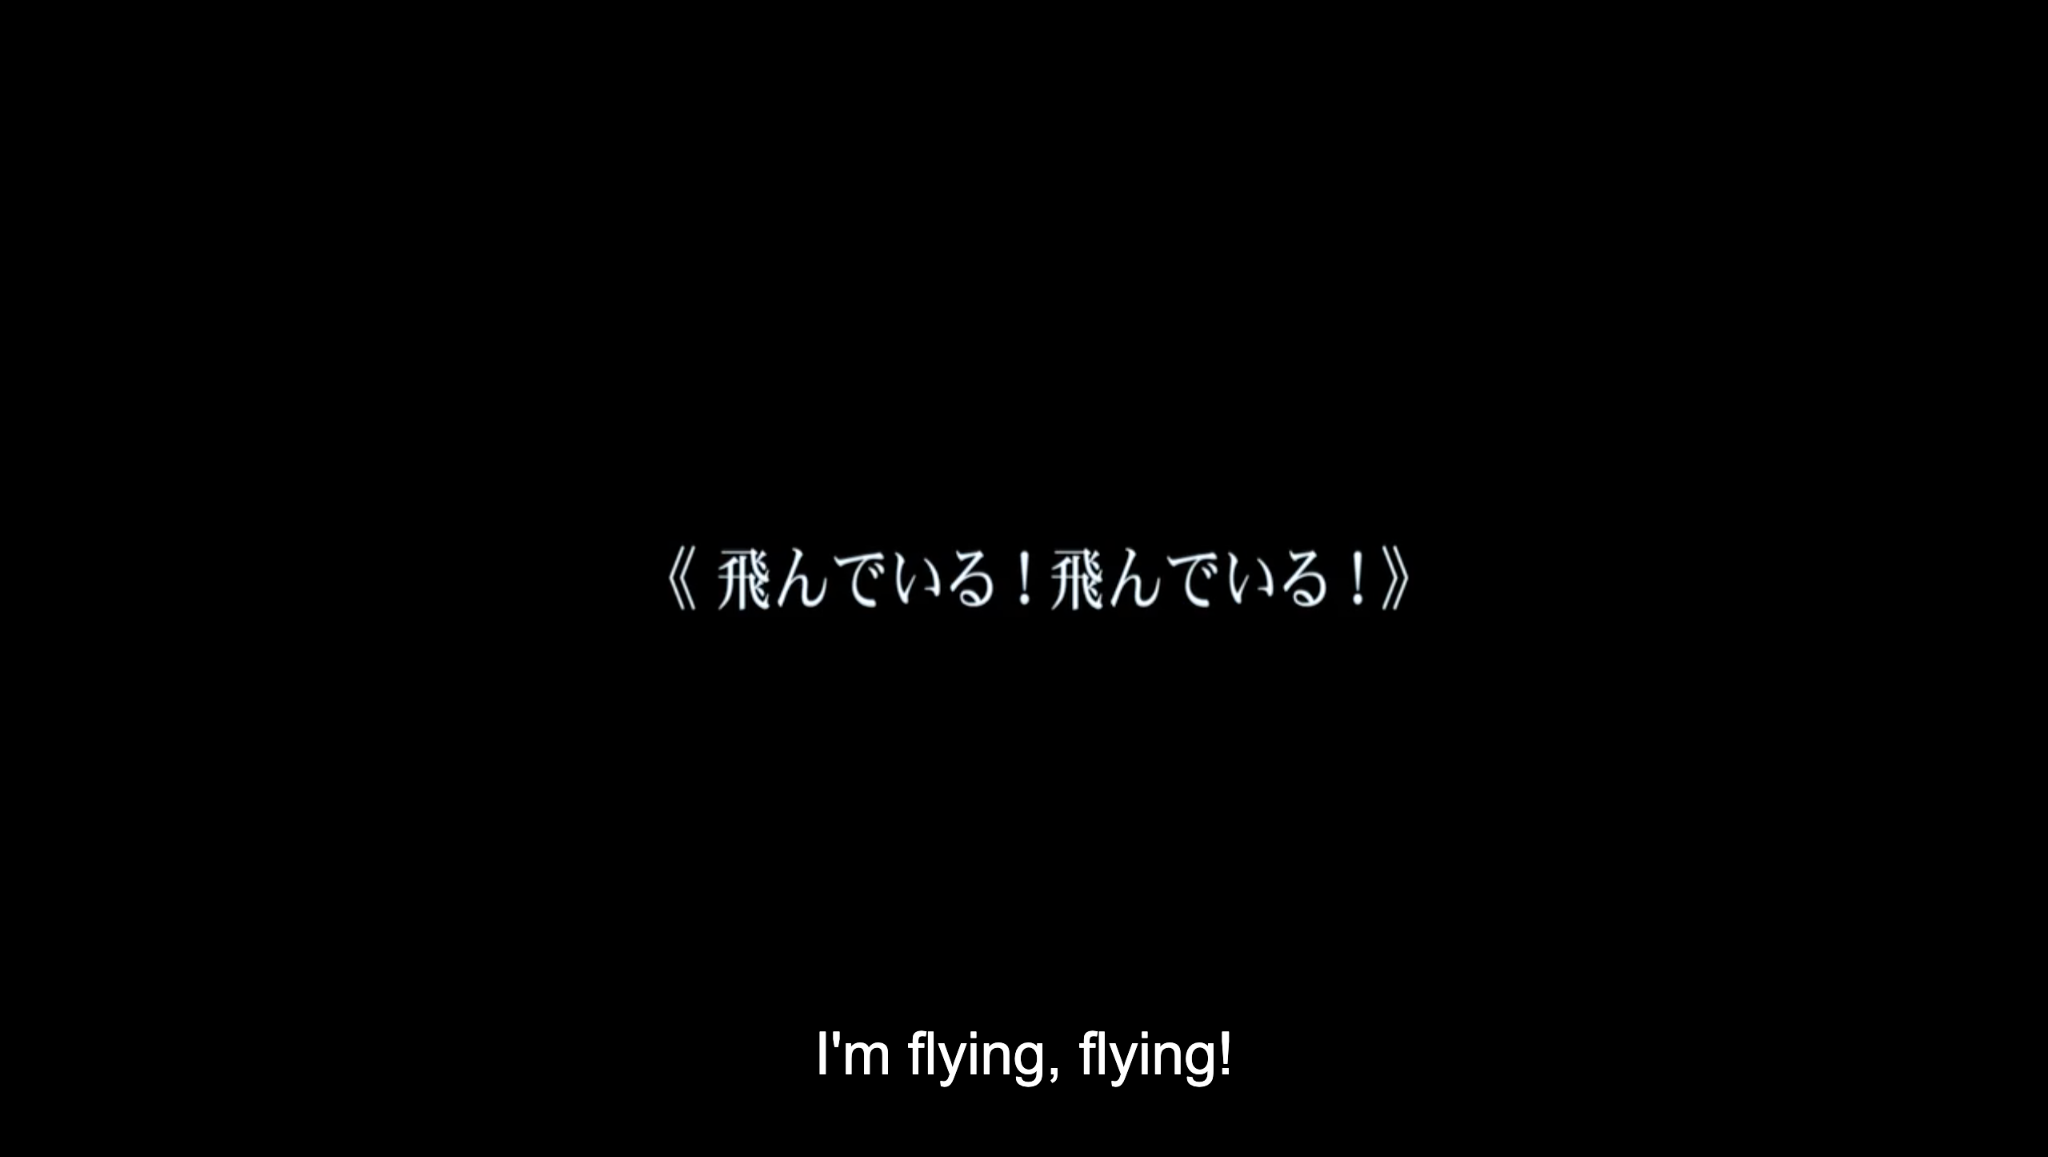 """A black screen with white text, reading, """"I'm flying! I'm flying!"""" in Japanese"""